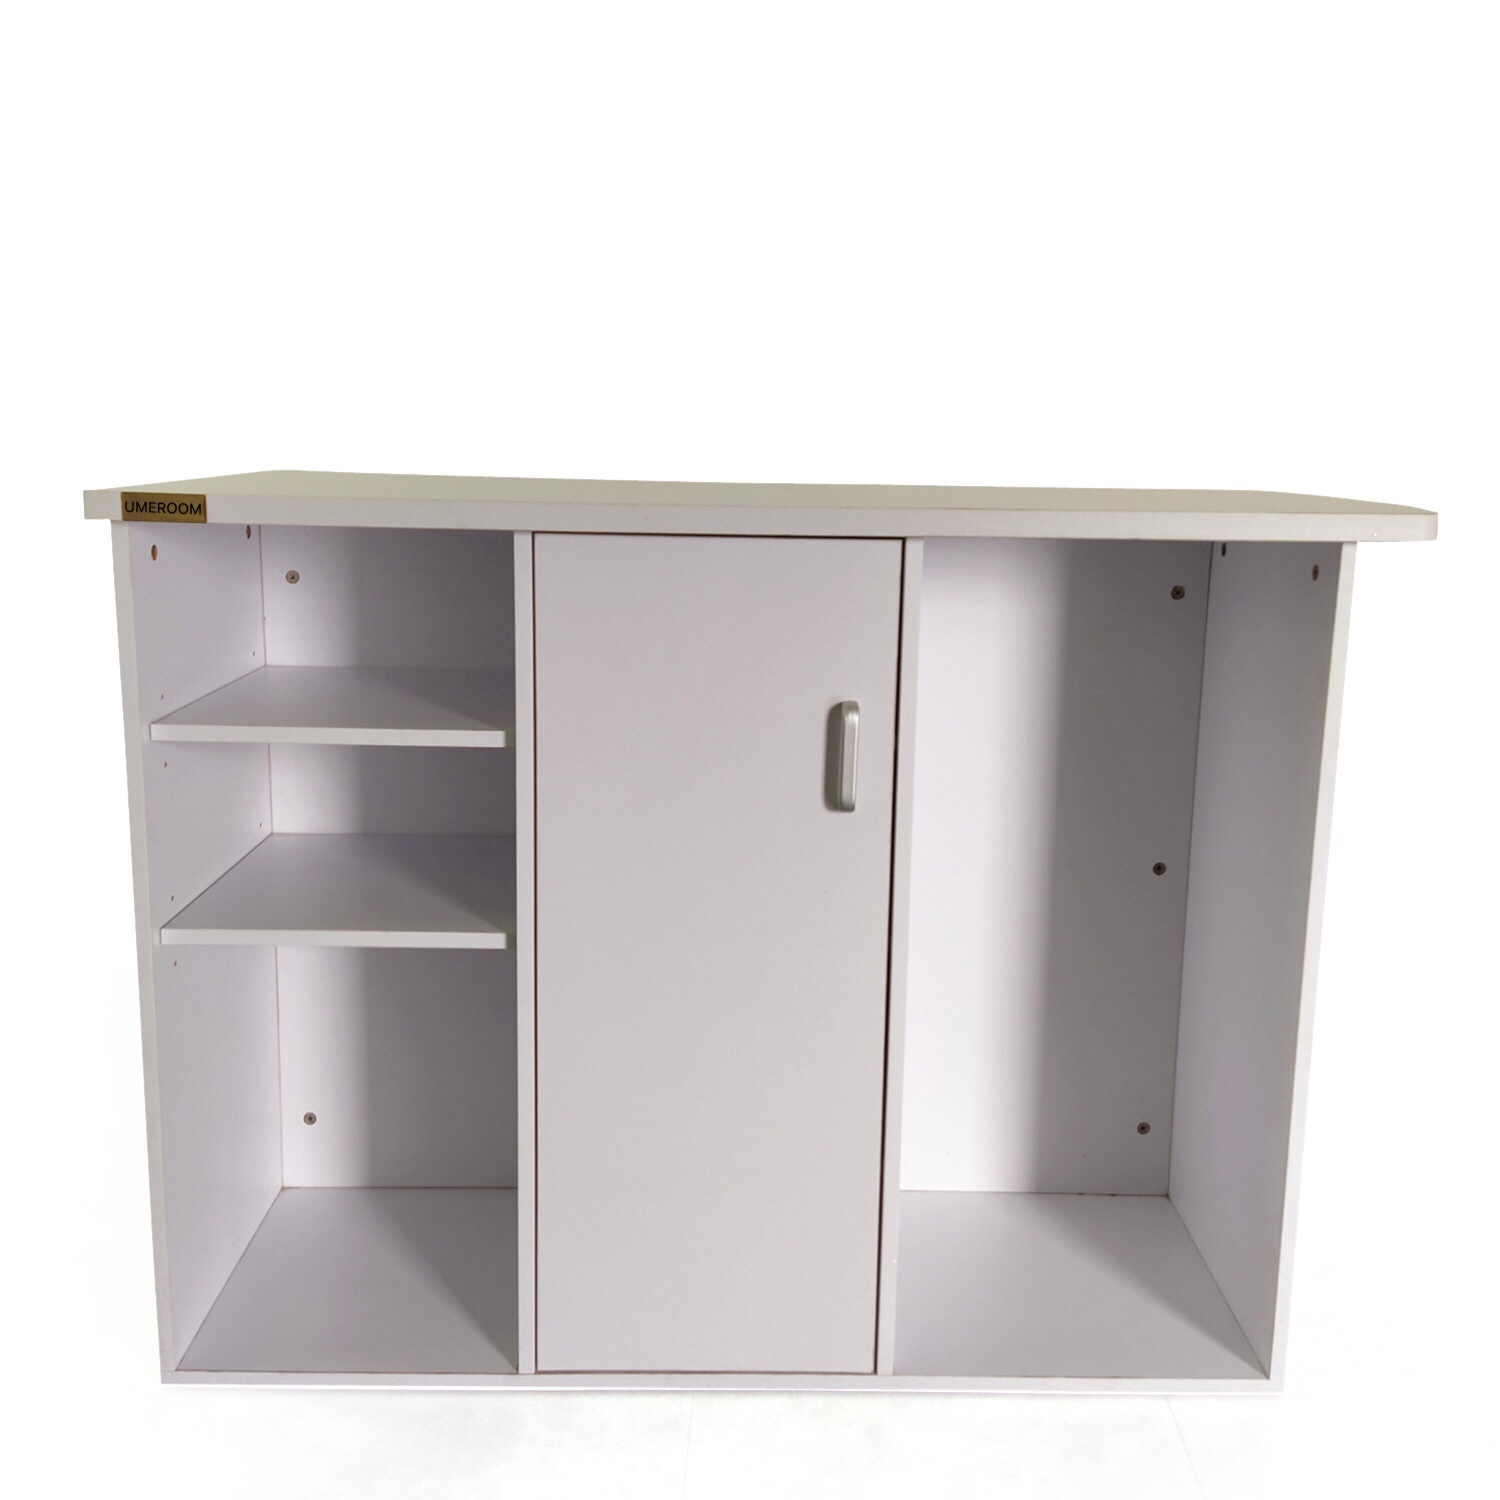 umeroom-side-cabinet-storage-spacious-storage-racks-white-modern-cabinet-for-living-room-entryway-home-furniture